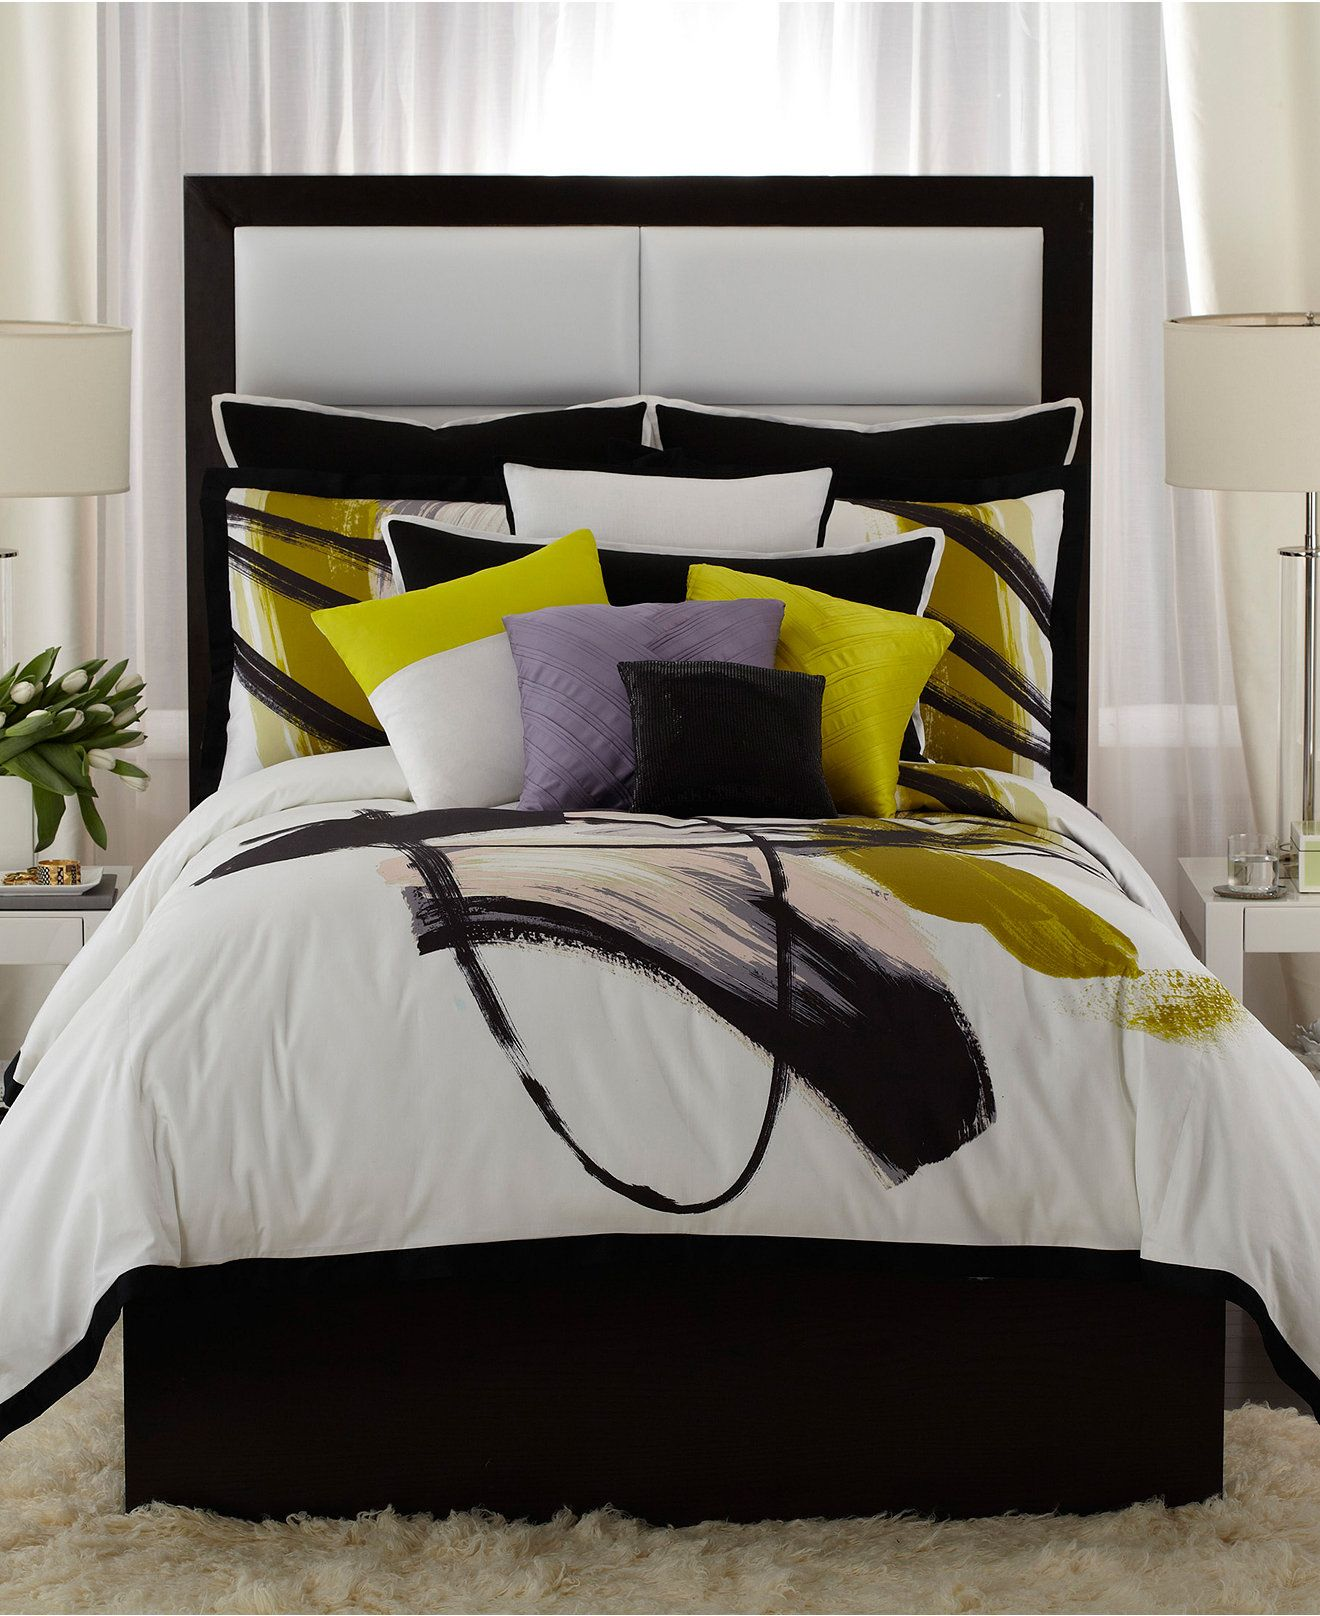 vince camuto basel comforter mini sets - bedding collections - bed